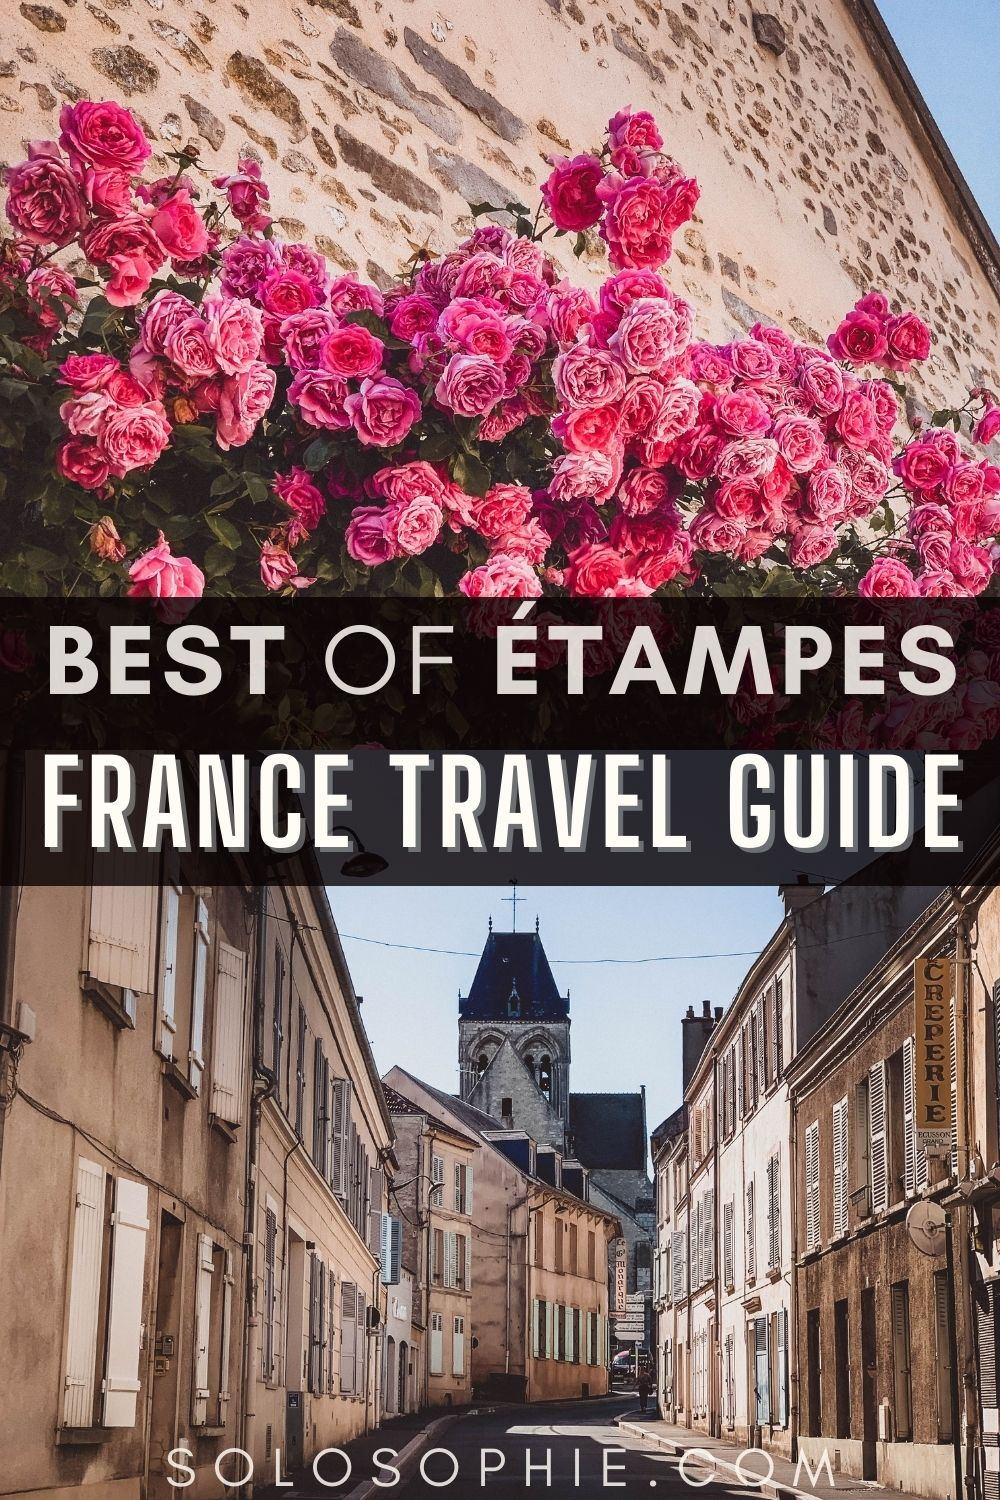 Best of Etampes Ile de France Paris day trip/ A Guide to the Best Things to do in Étampes, France